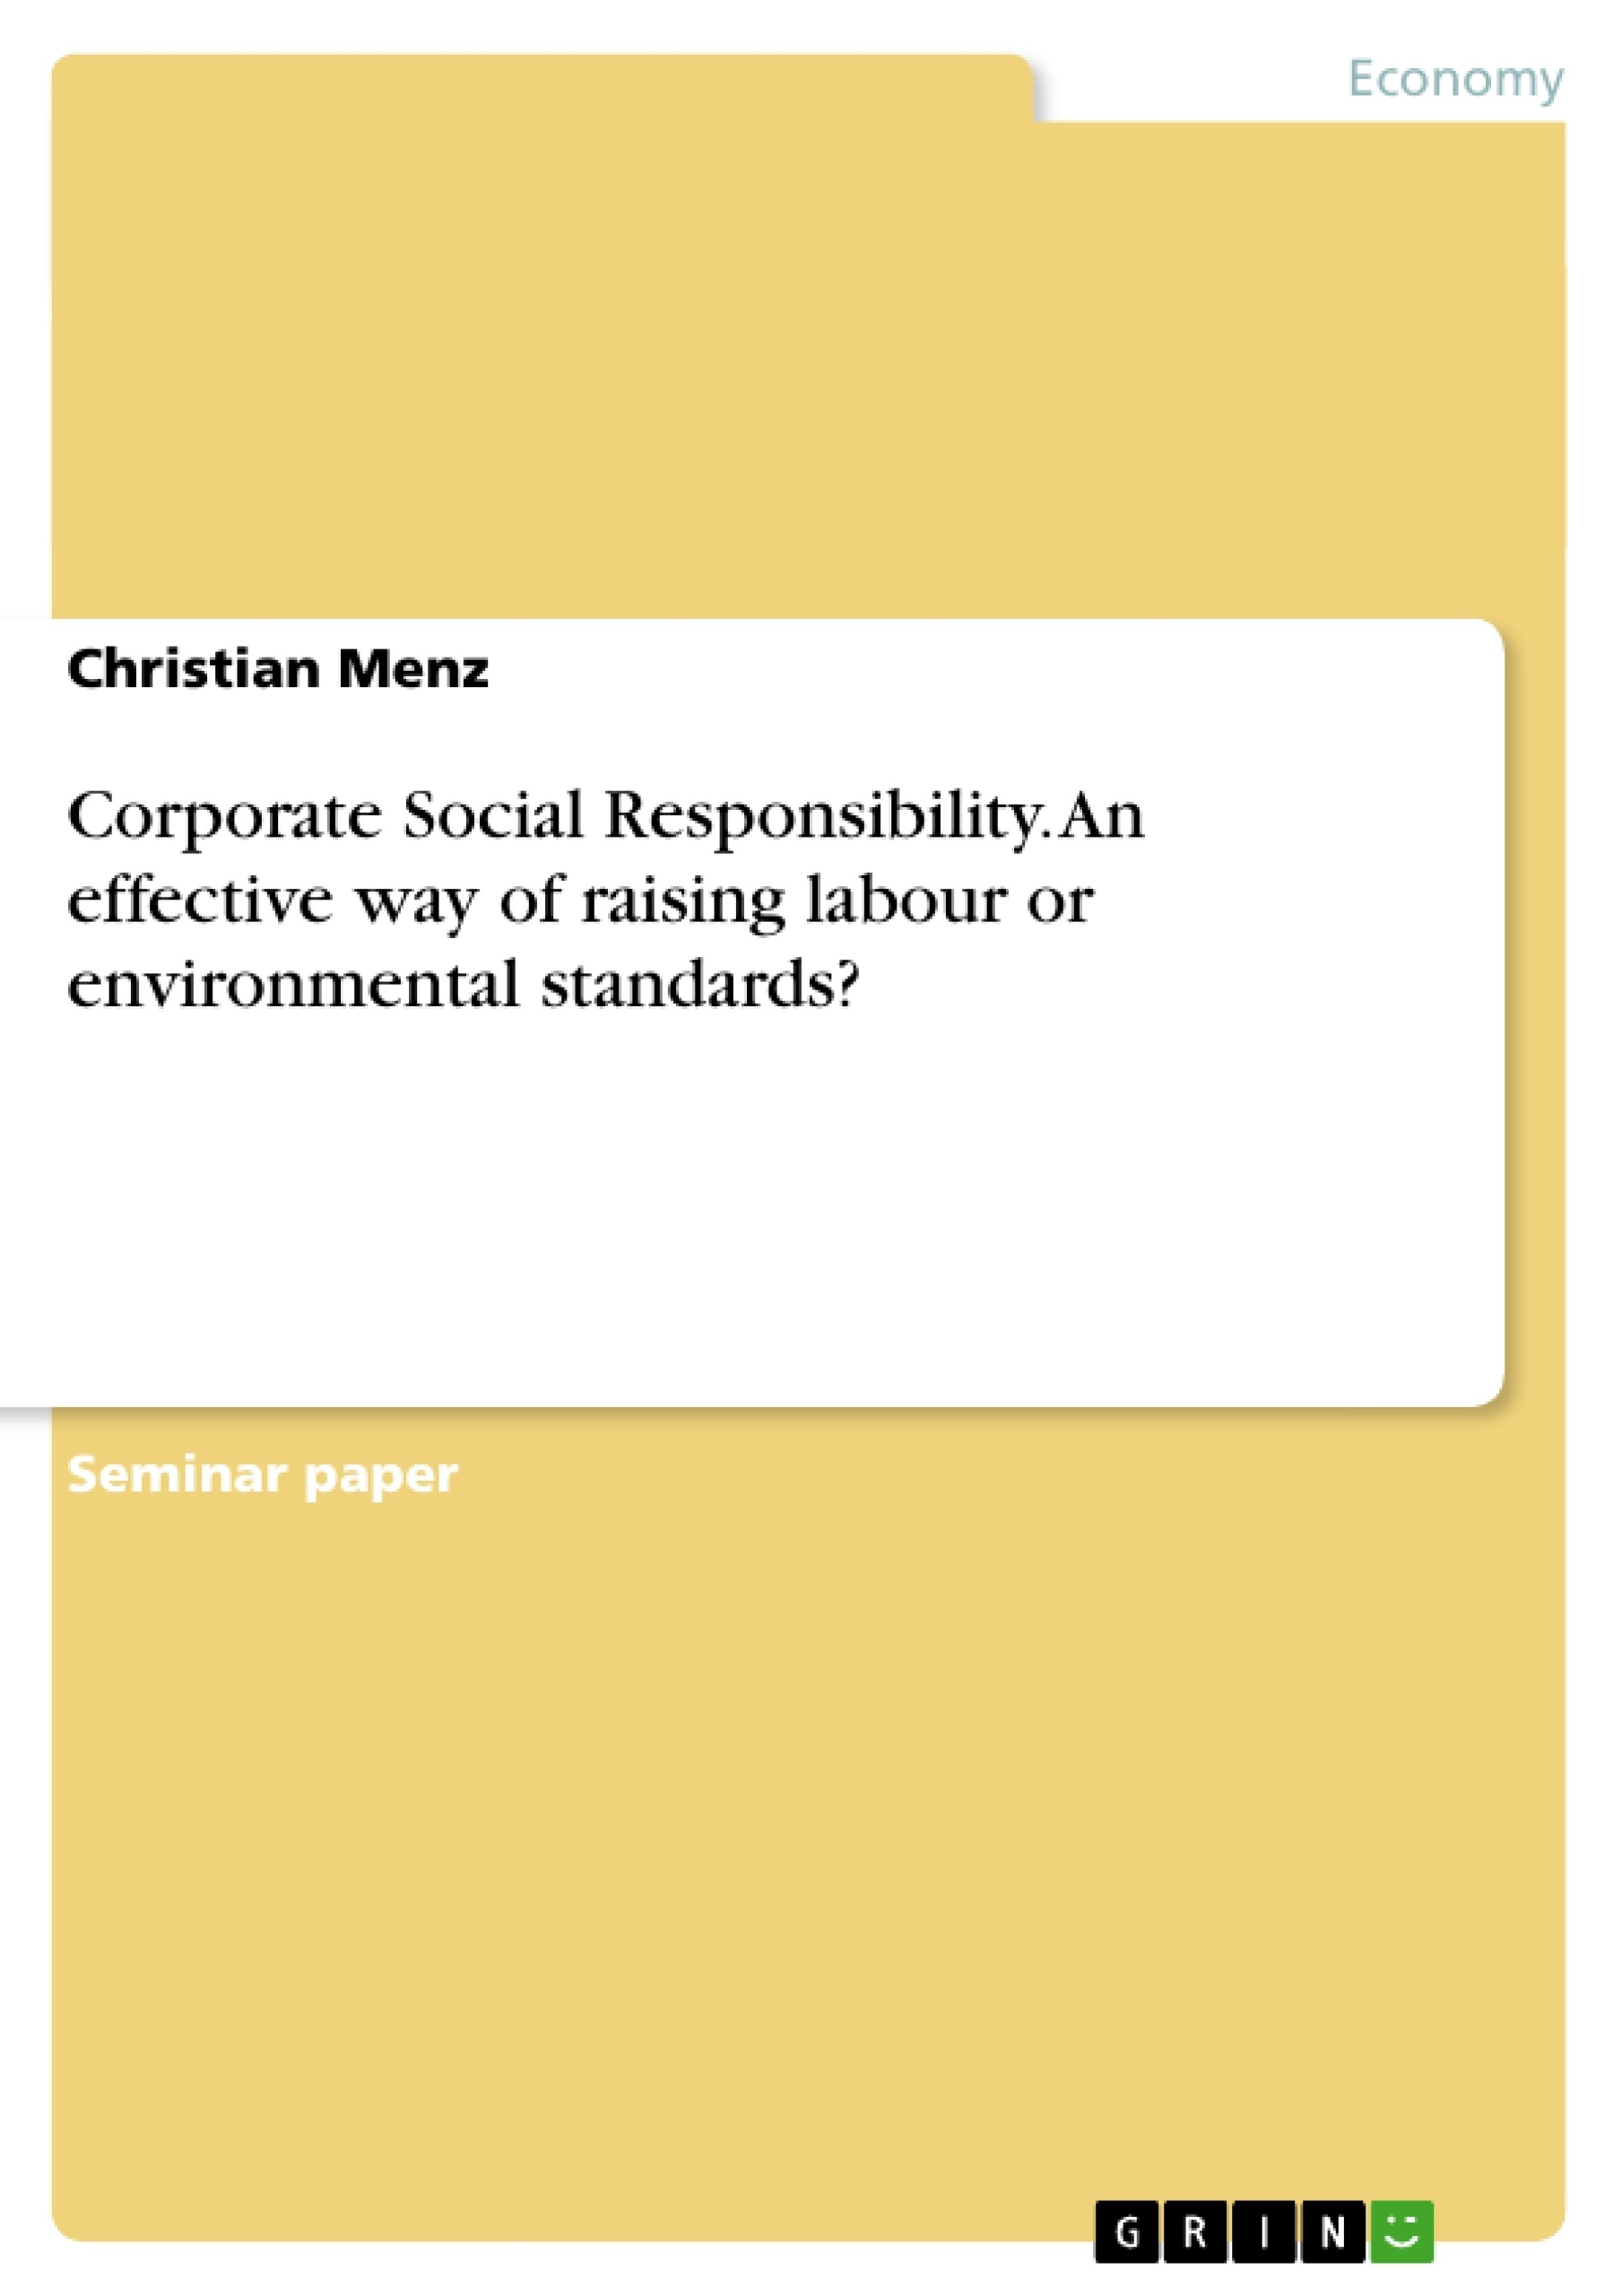 Title: Corporate Social Responsibility. An effective way of raising labour or environmental standards?